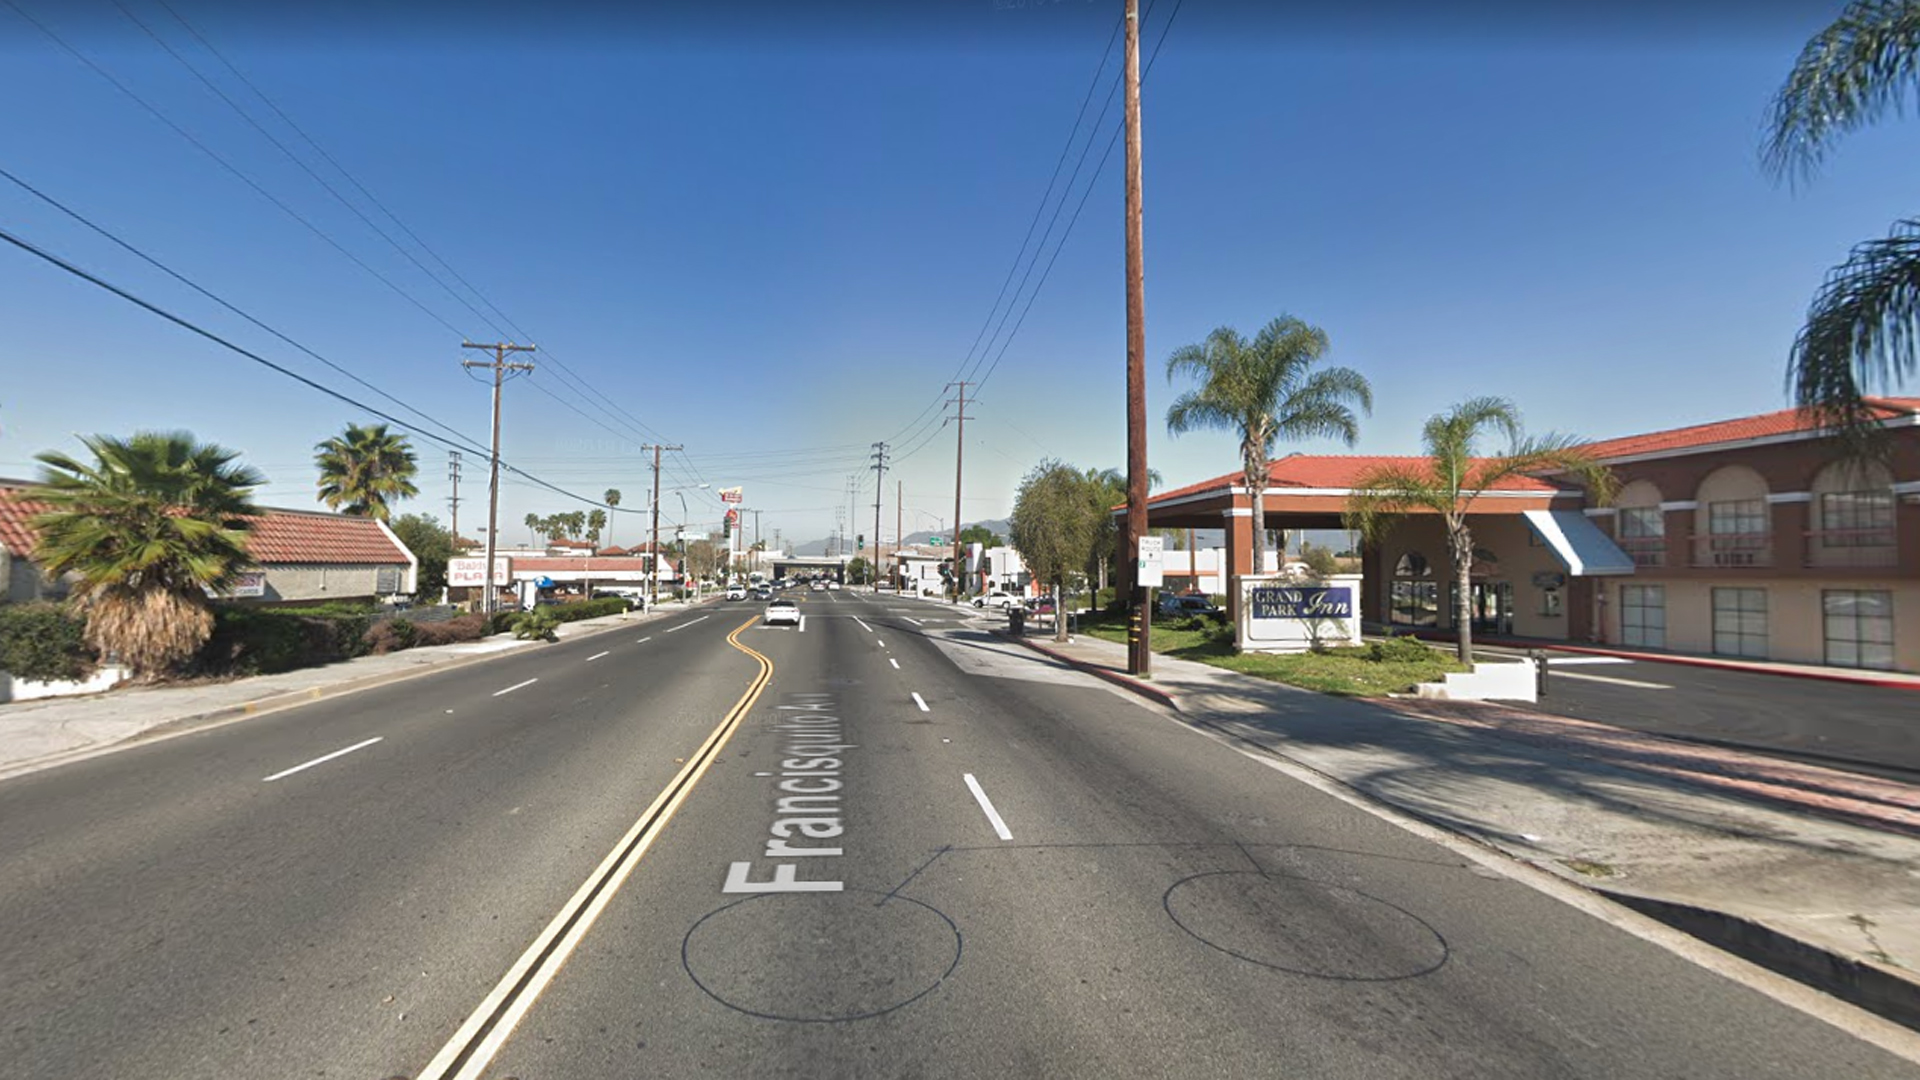 The 13900 block of Francisquito Avenue in Baldwin Park, as pictured in a Google Street View image in March of 2019.